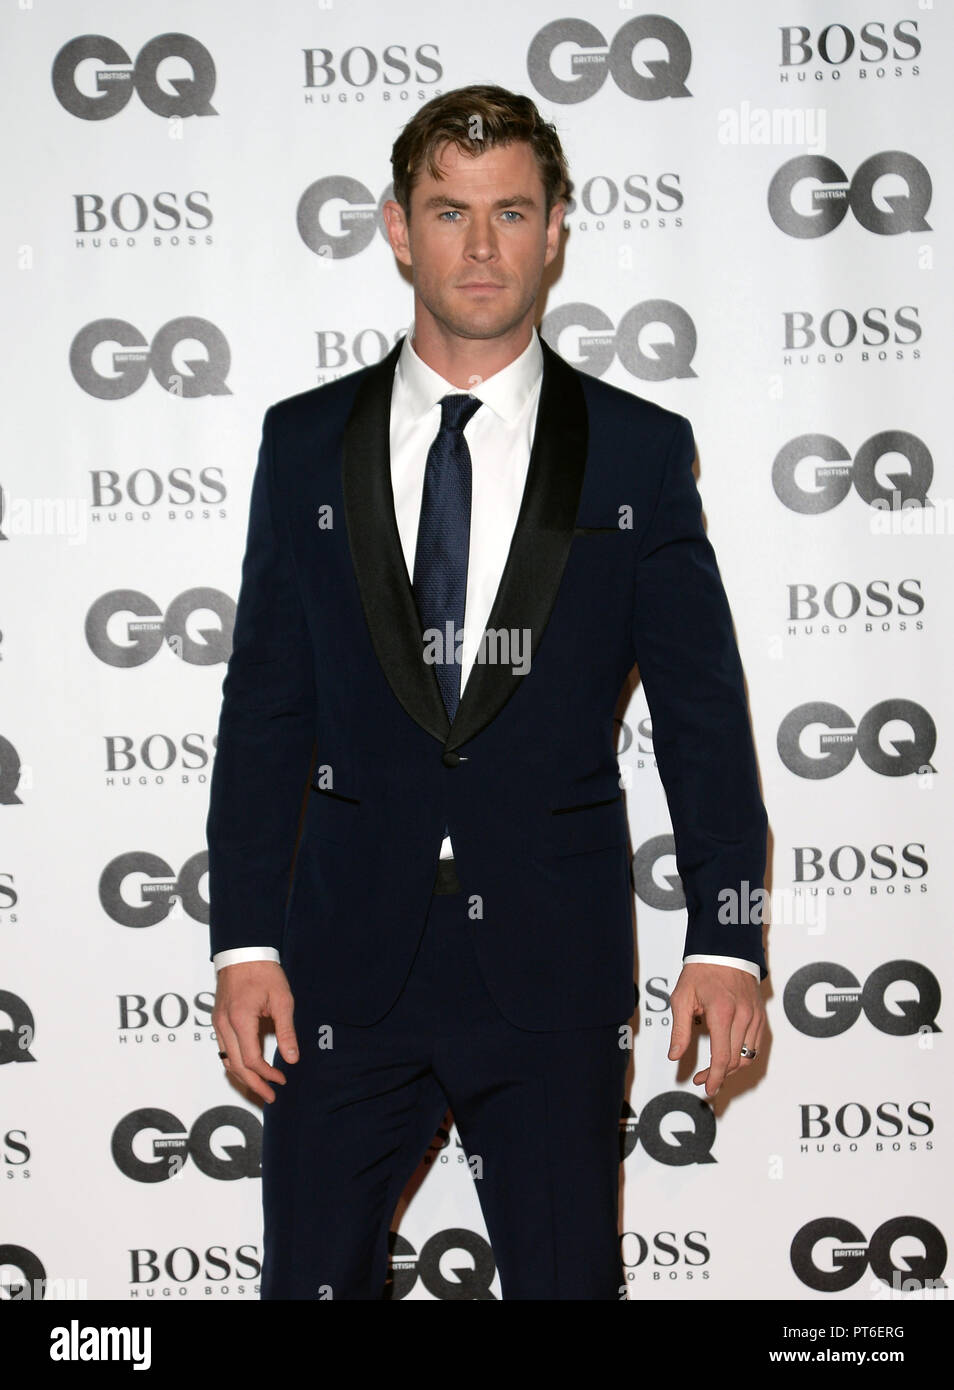 GQ Men Of The Year Awards at The Tate Modern  Featuring: Chris Hemsworth Where: London, United Kingdom When: 05 Sep 2018 Credit: Tony Oudot/WENN Stock Photo